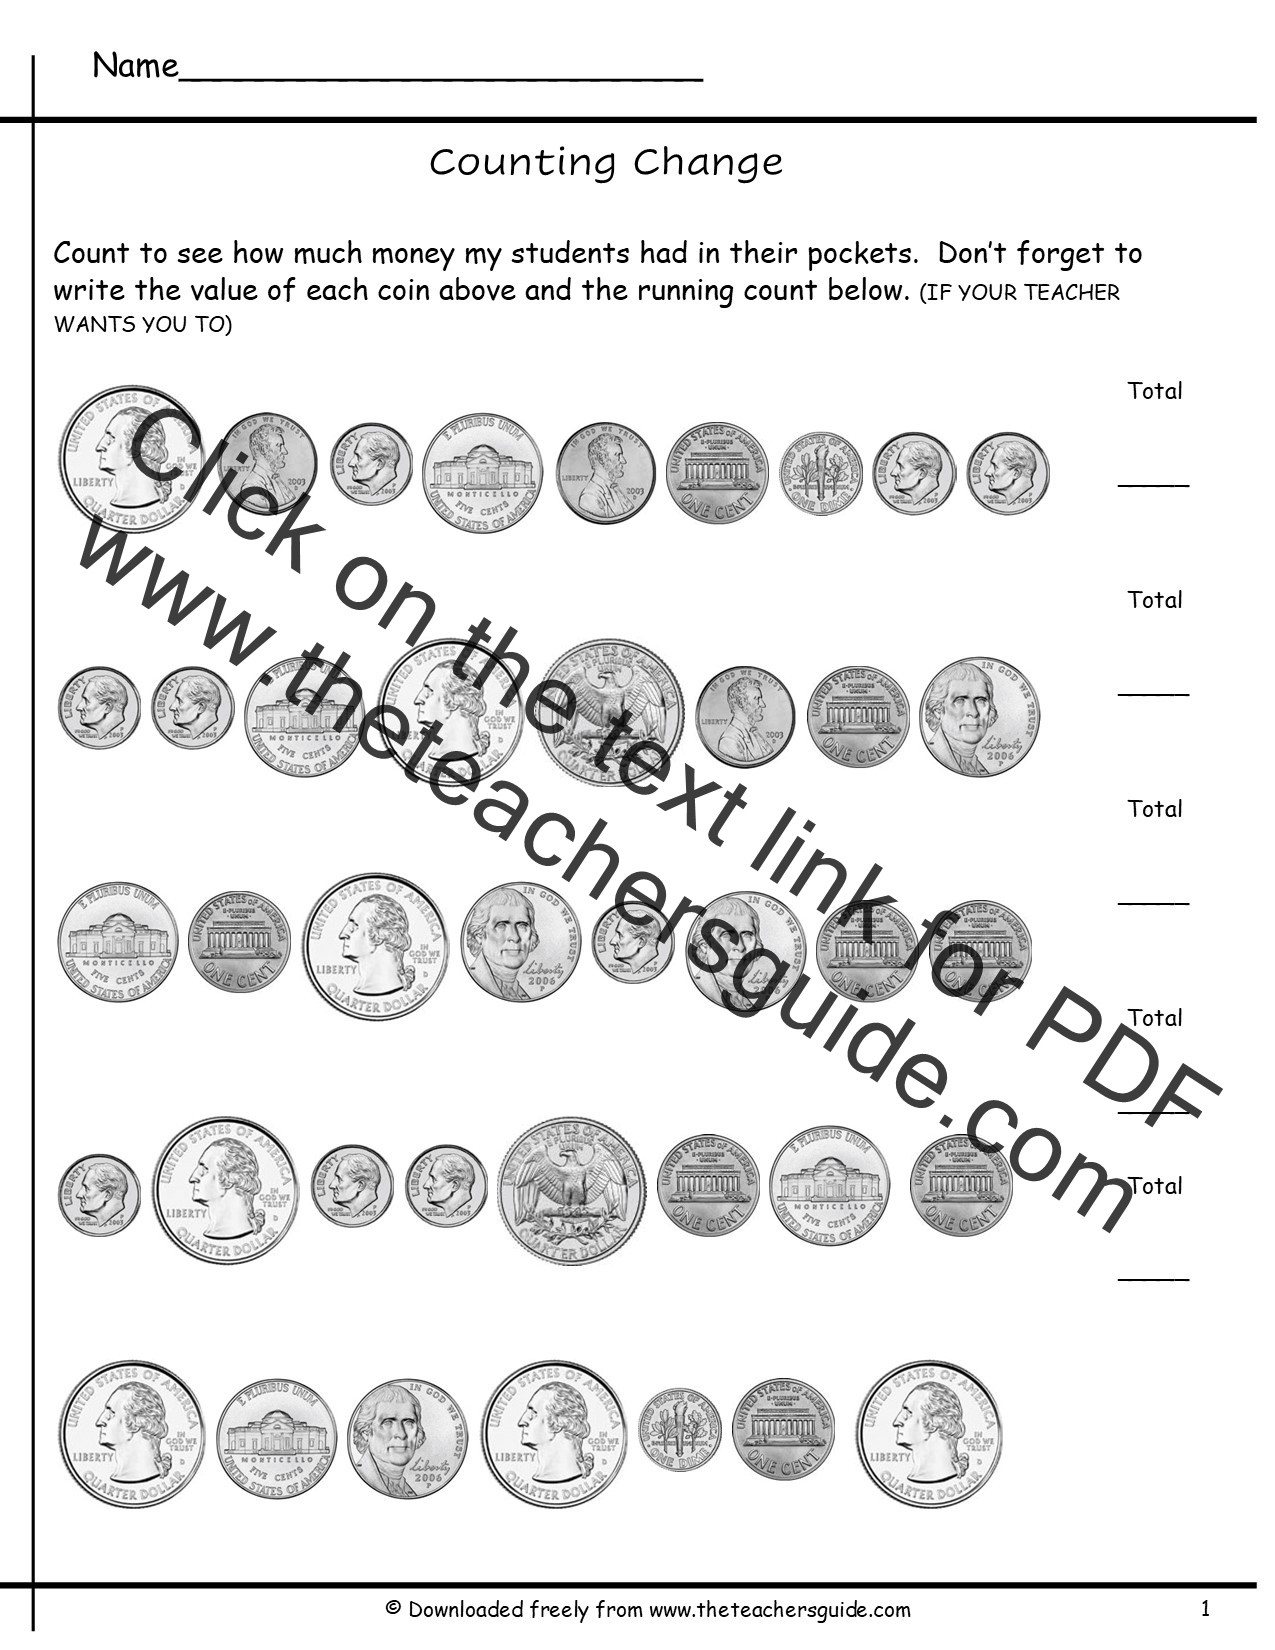 Counting Coins Worksheets 2nd Grade Counting Coins Worksheets From the Teacher Guide Teaching